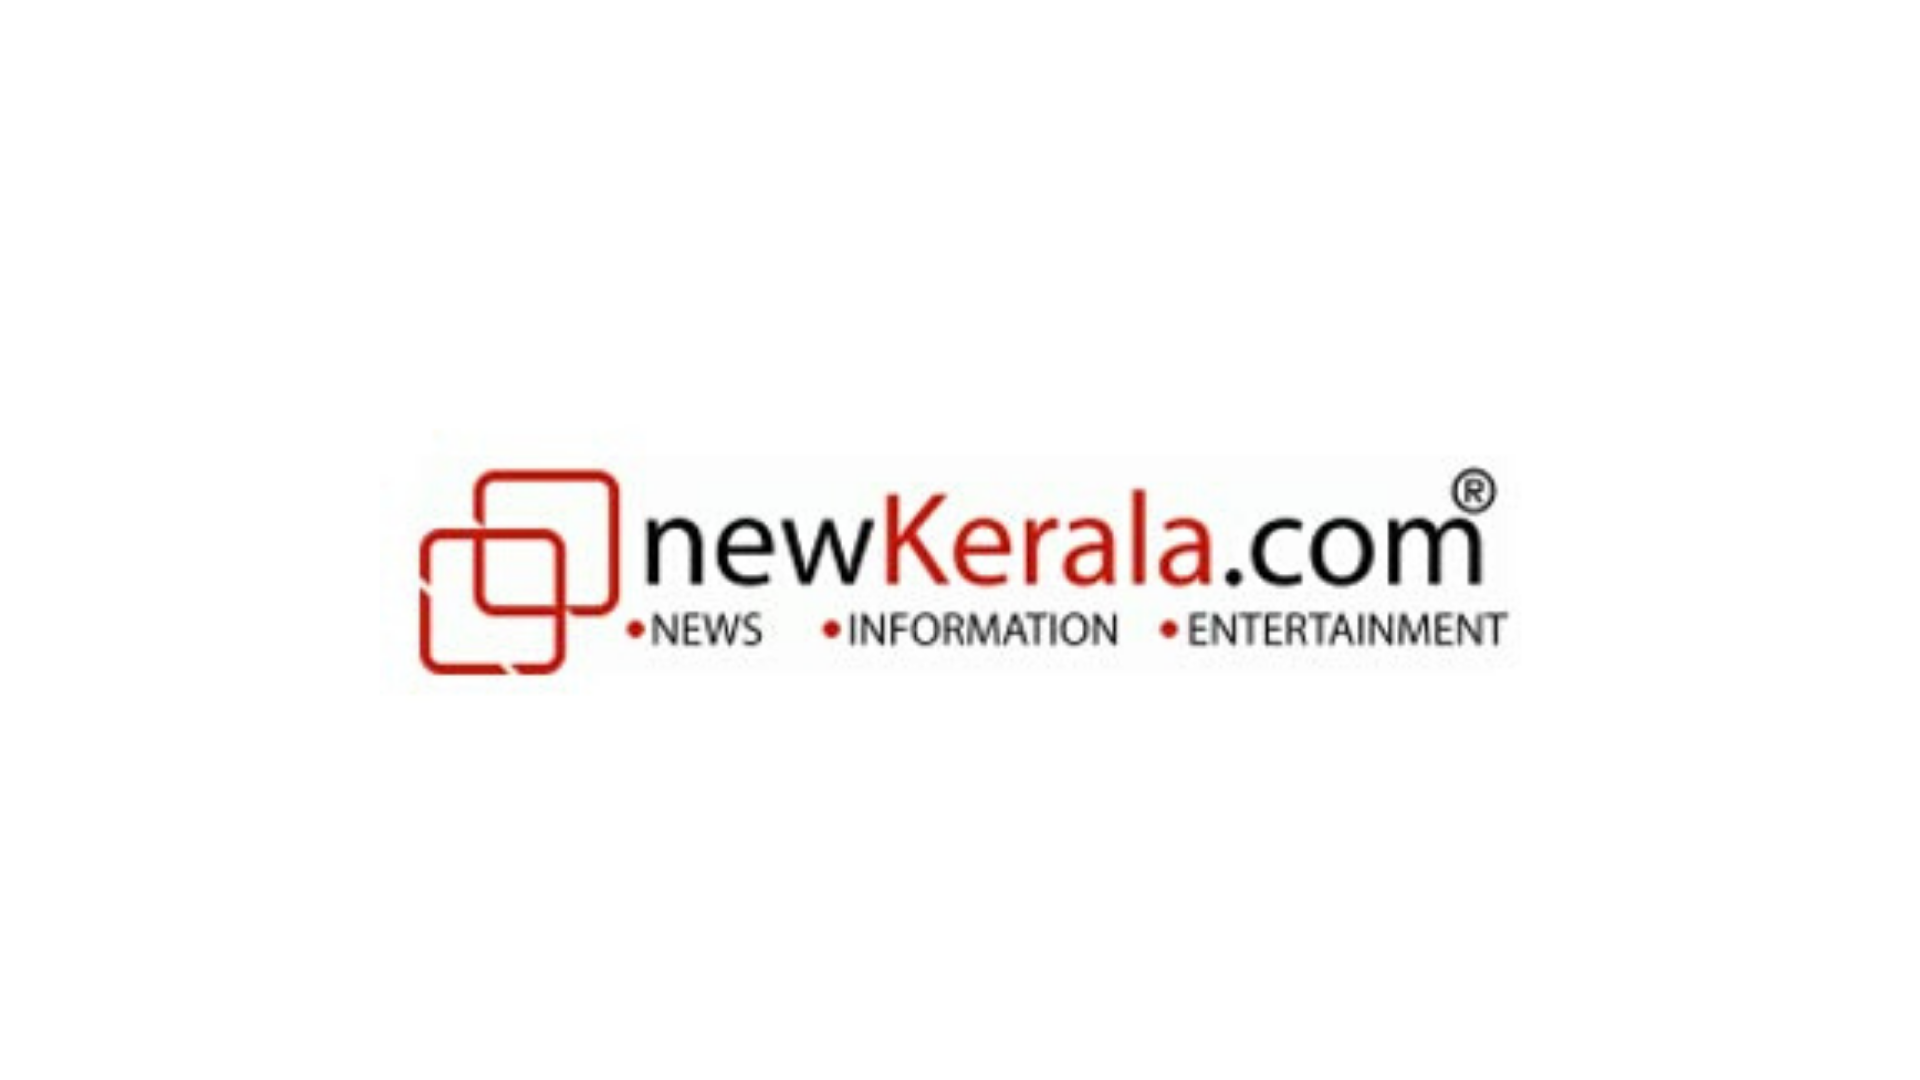 newKerala Press